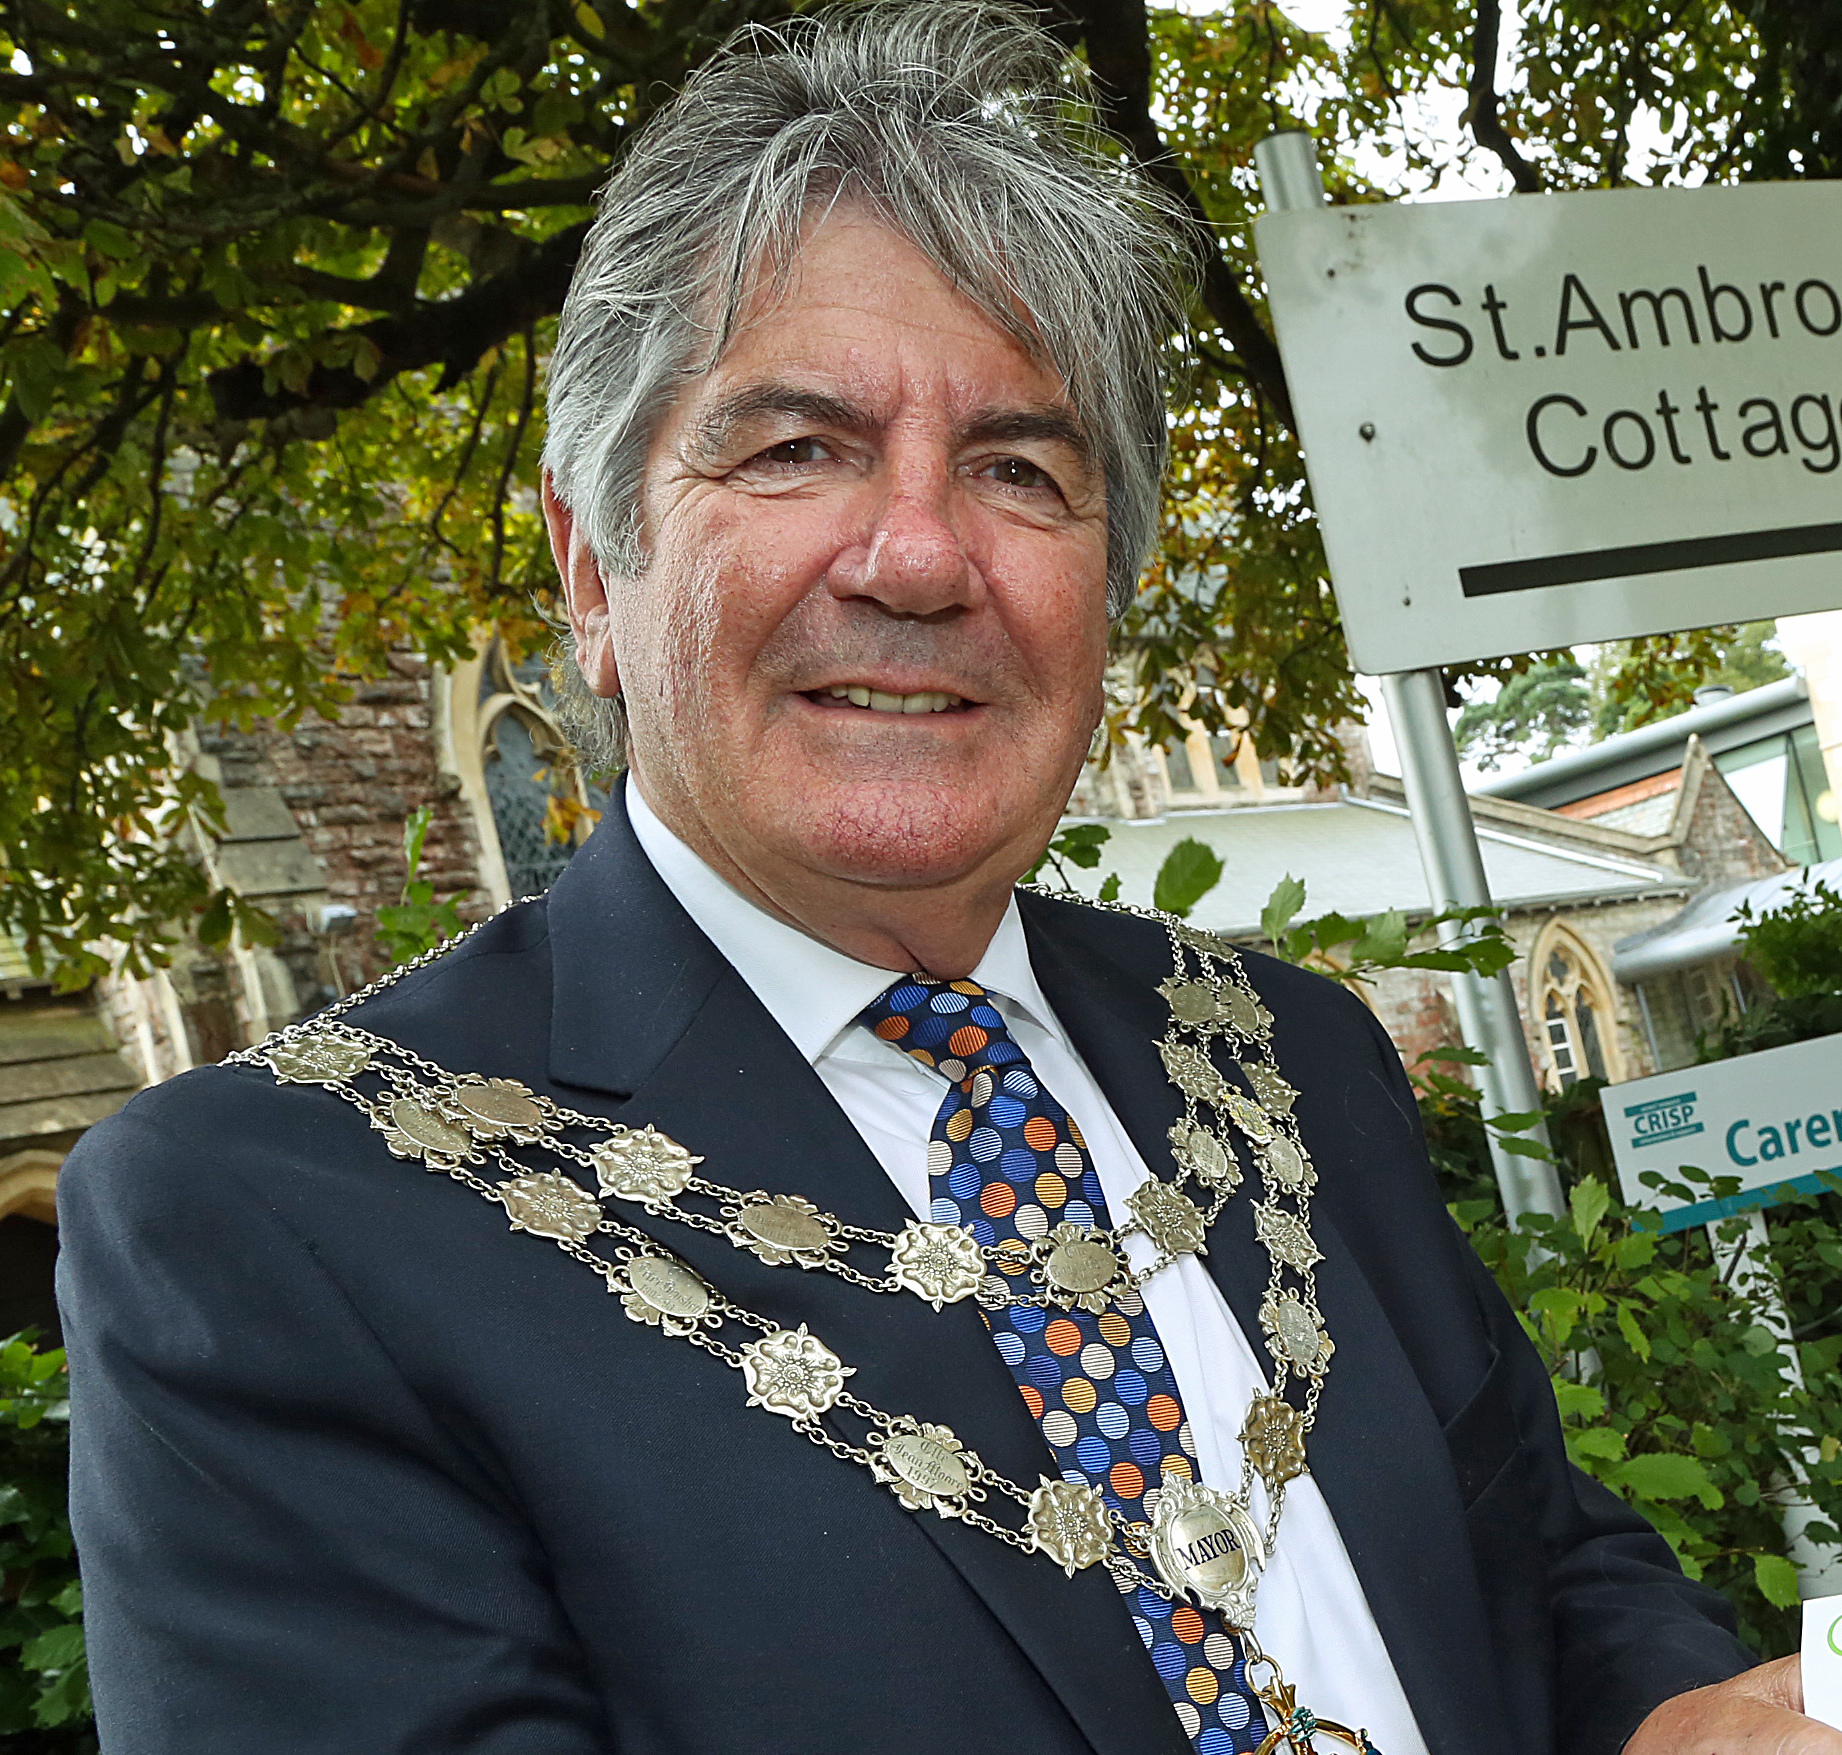 Former Mayor of Bournemouth Cllr John Adams